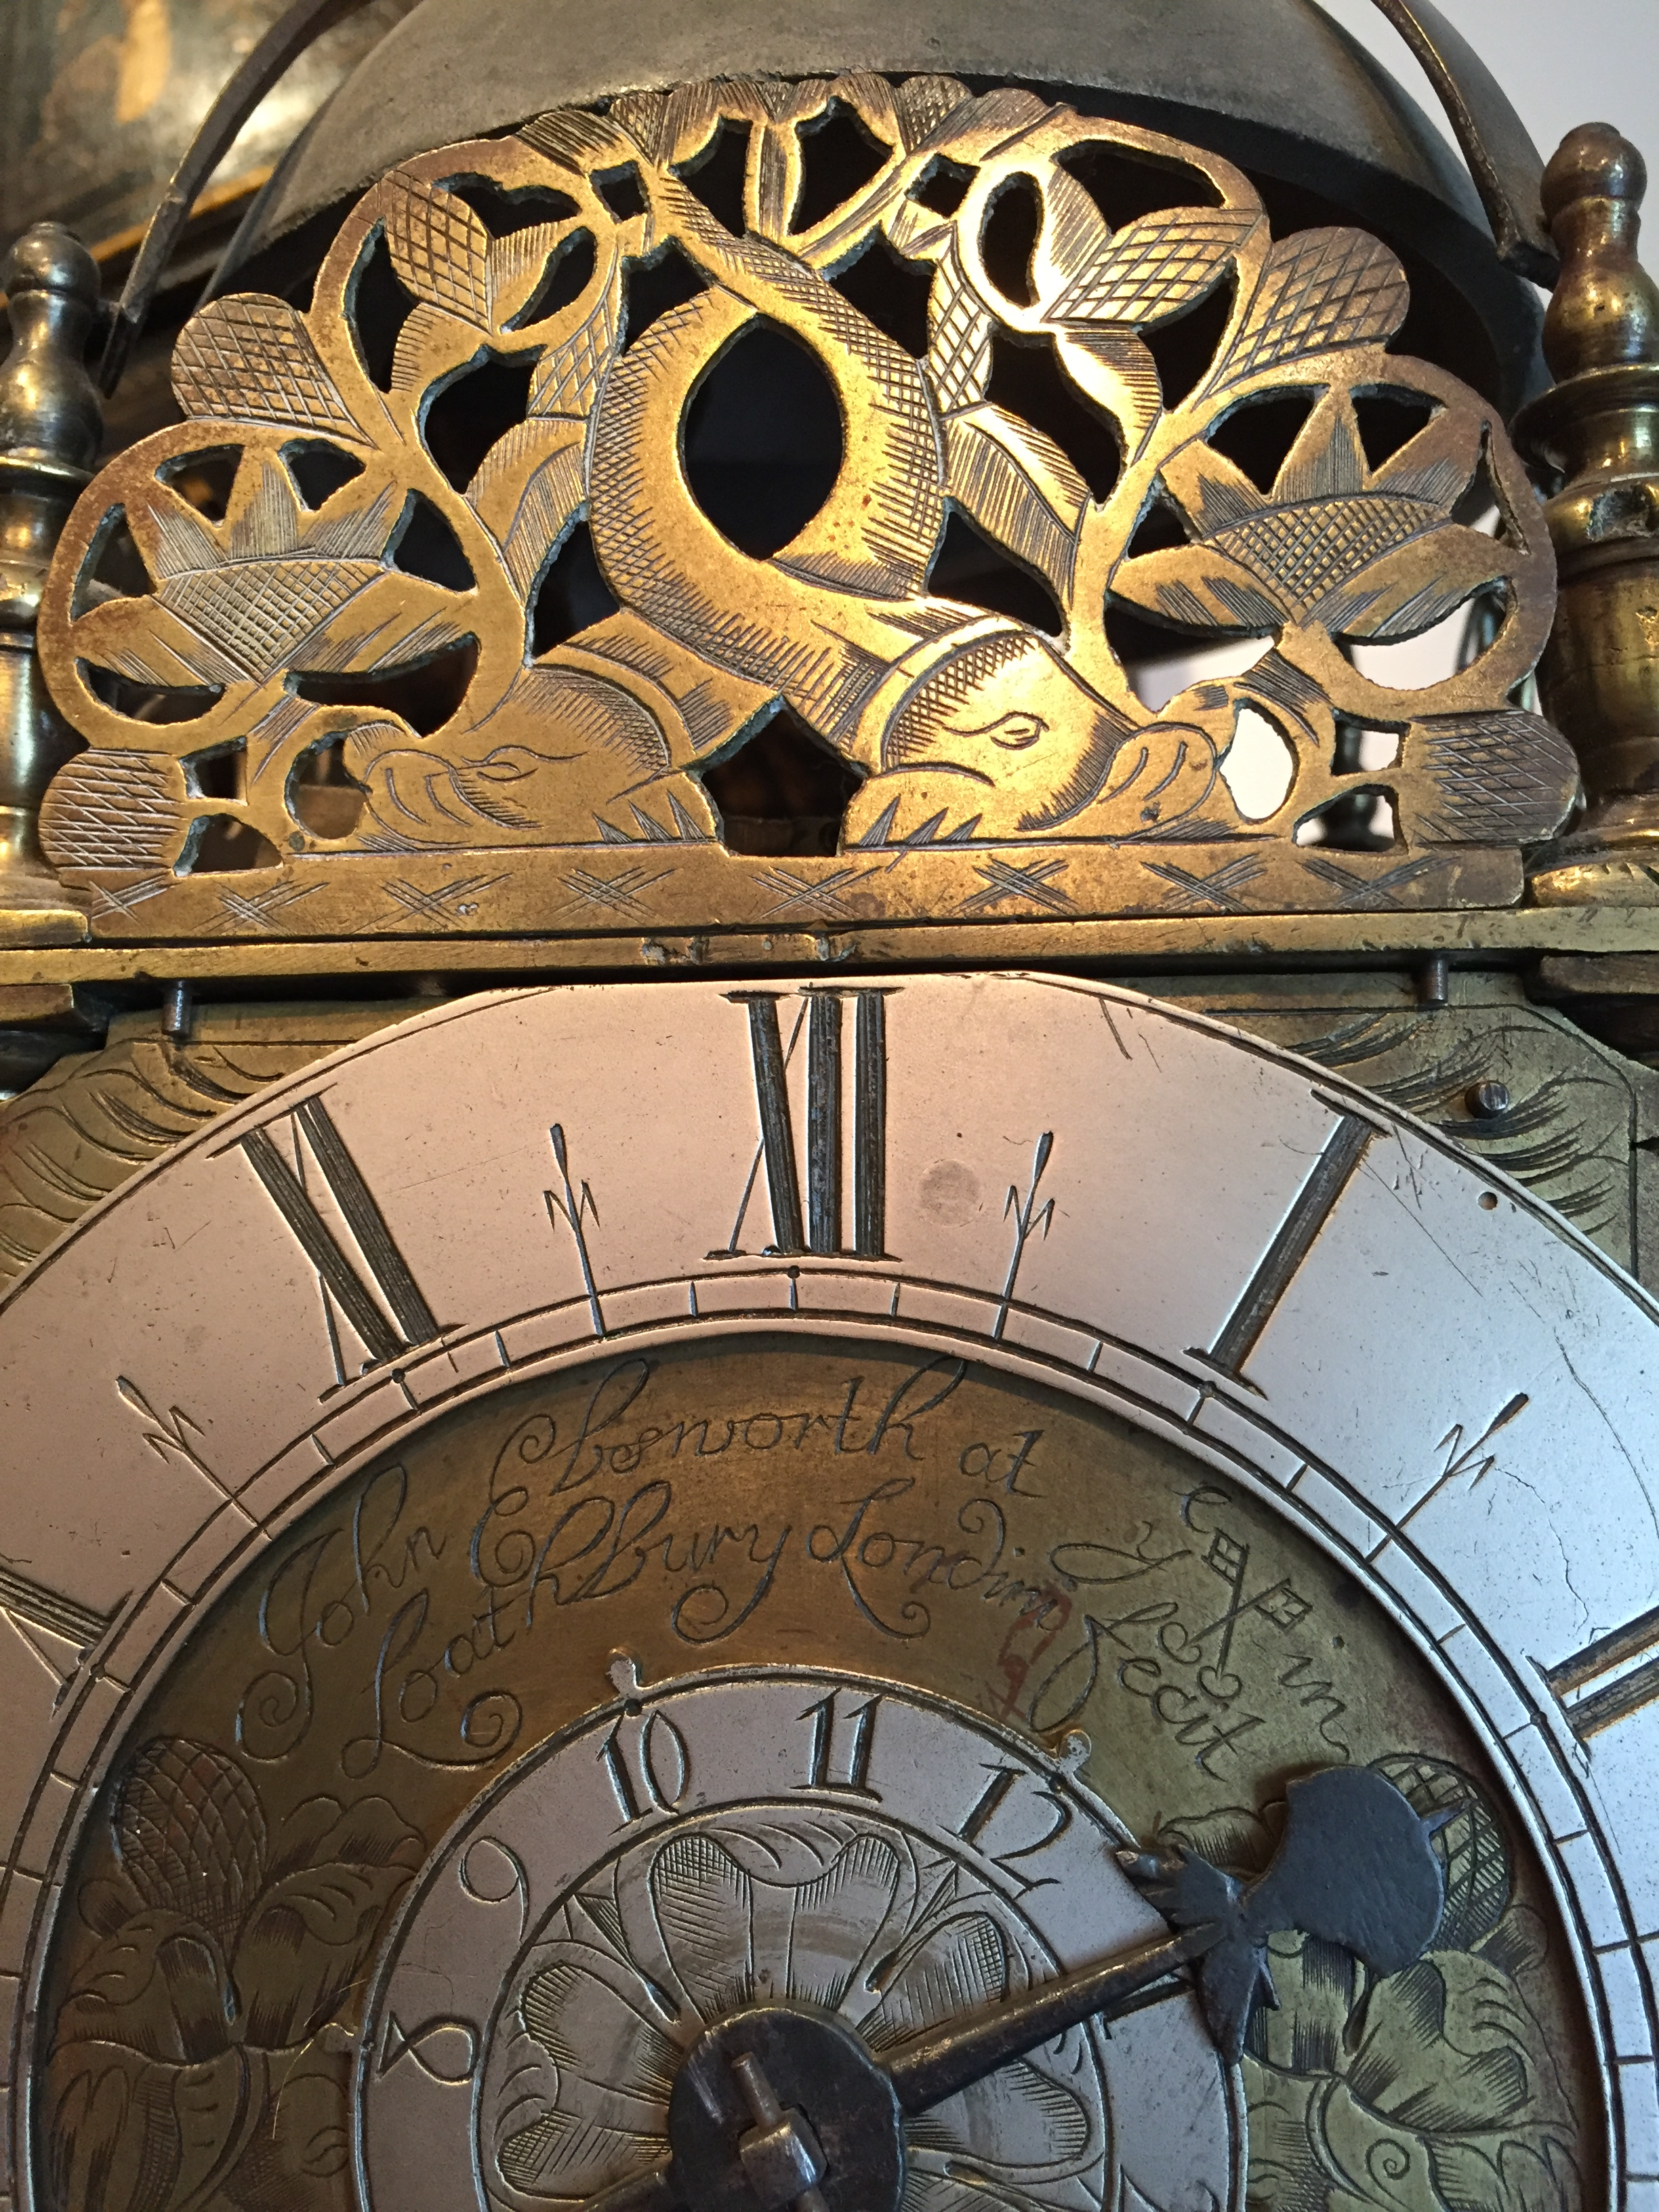 Detail of the Ebsworth lantern clock with engraved dolphin decoration above the signed dial. Raffety Ltd.